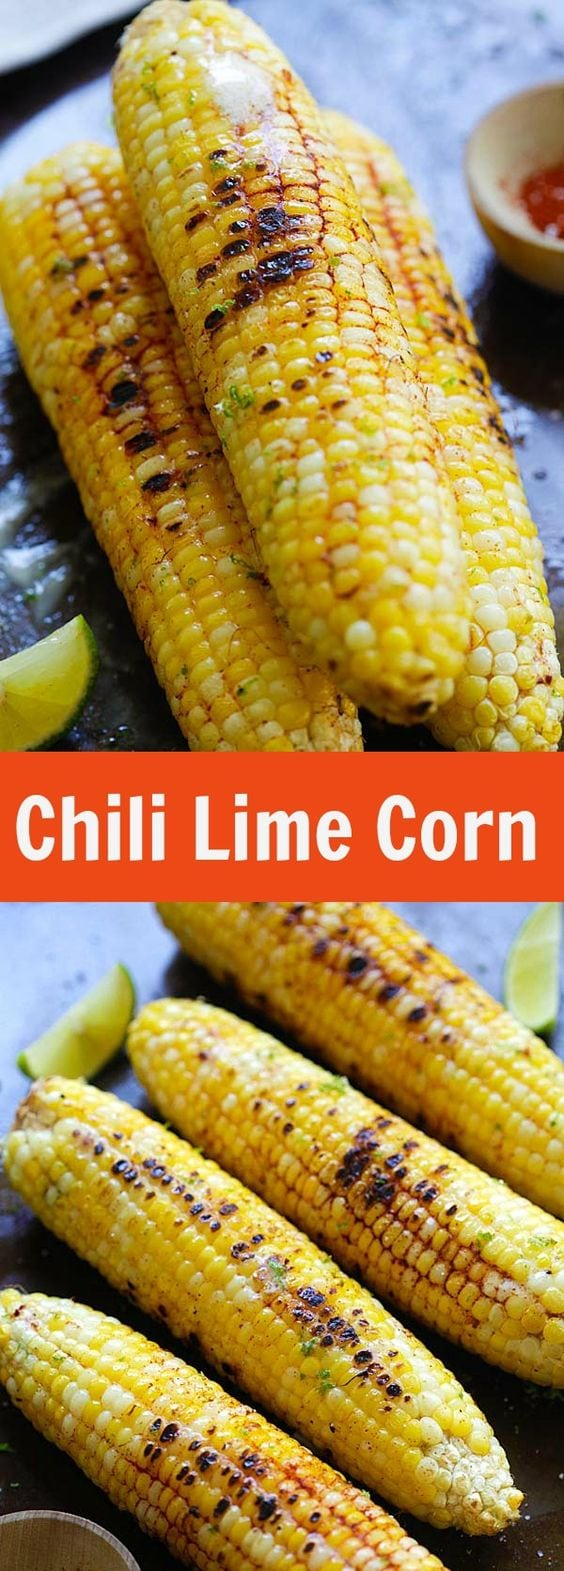 Chili Lime Corn - fresh corn seasoned with chili-lime spice mix. This chili lime corn recipe is so delicious and amazing that you'll want more | rasamalaysia.com